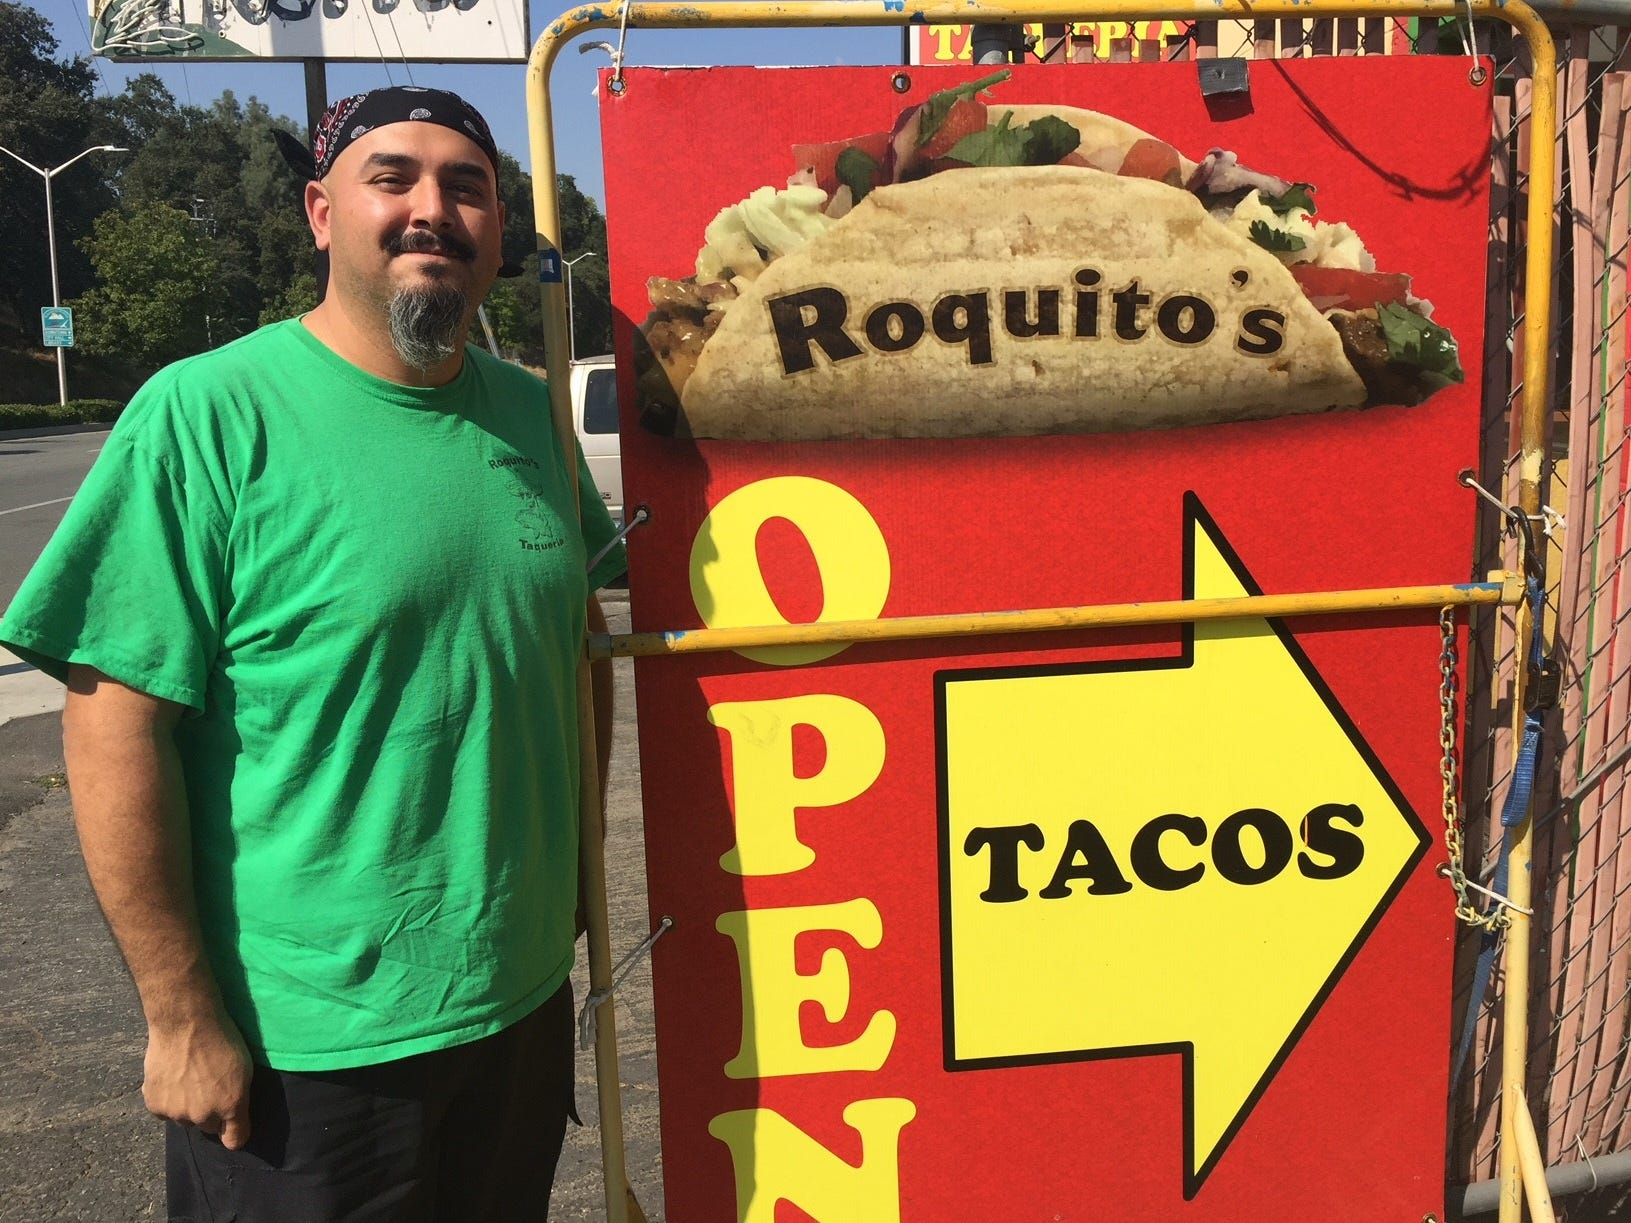 Owner Roque Carbajal outside Roquito's Taqueria in south Redding.